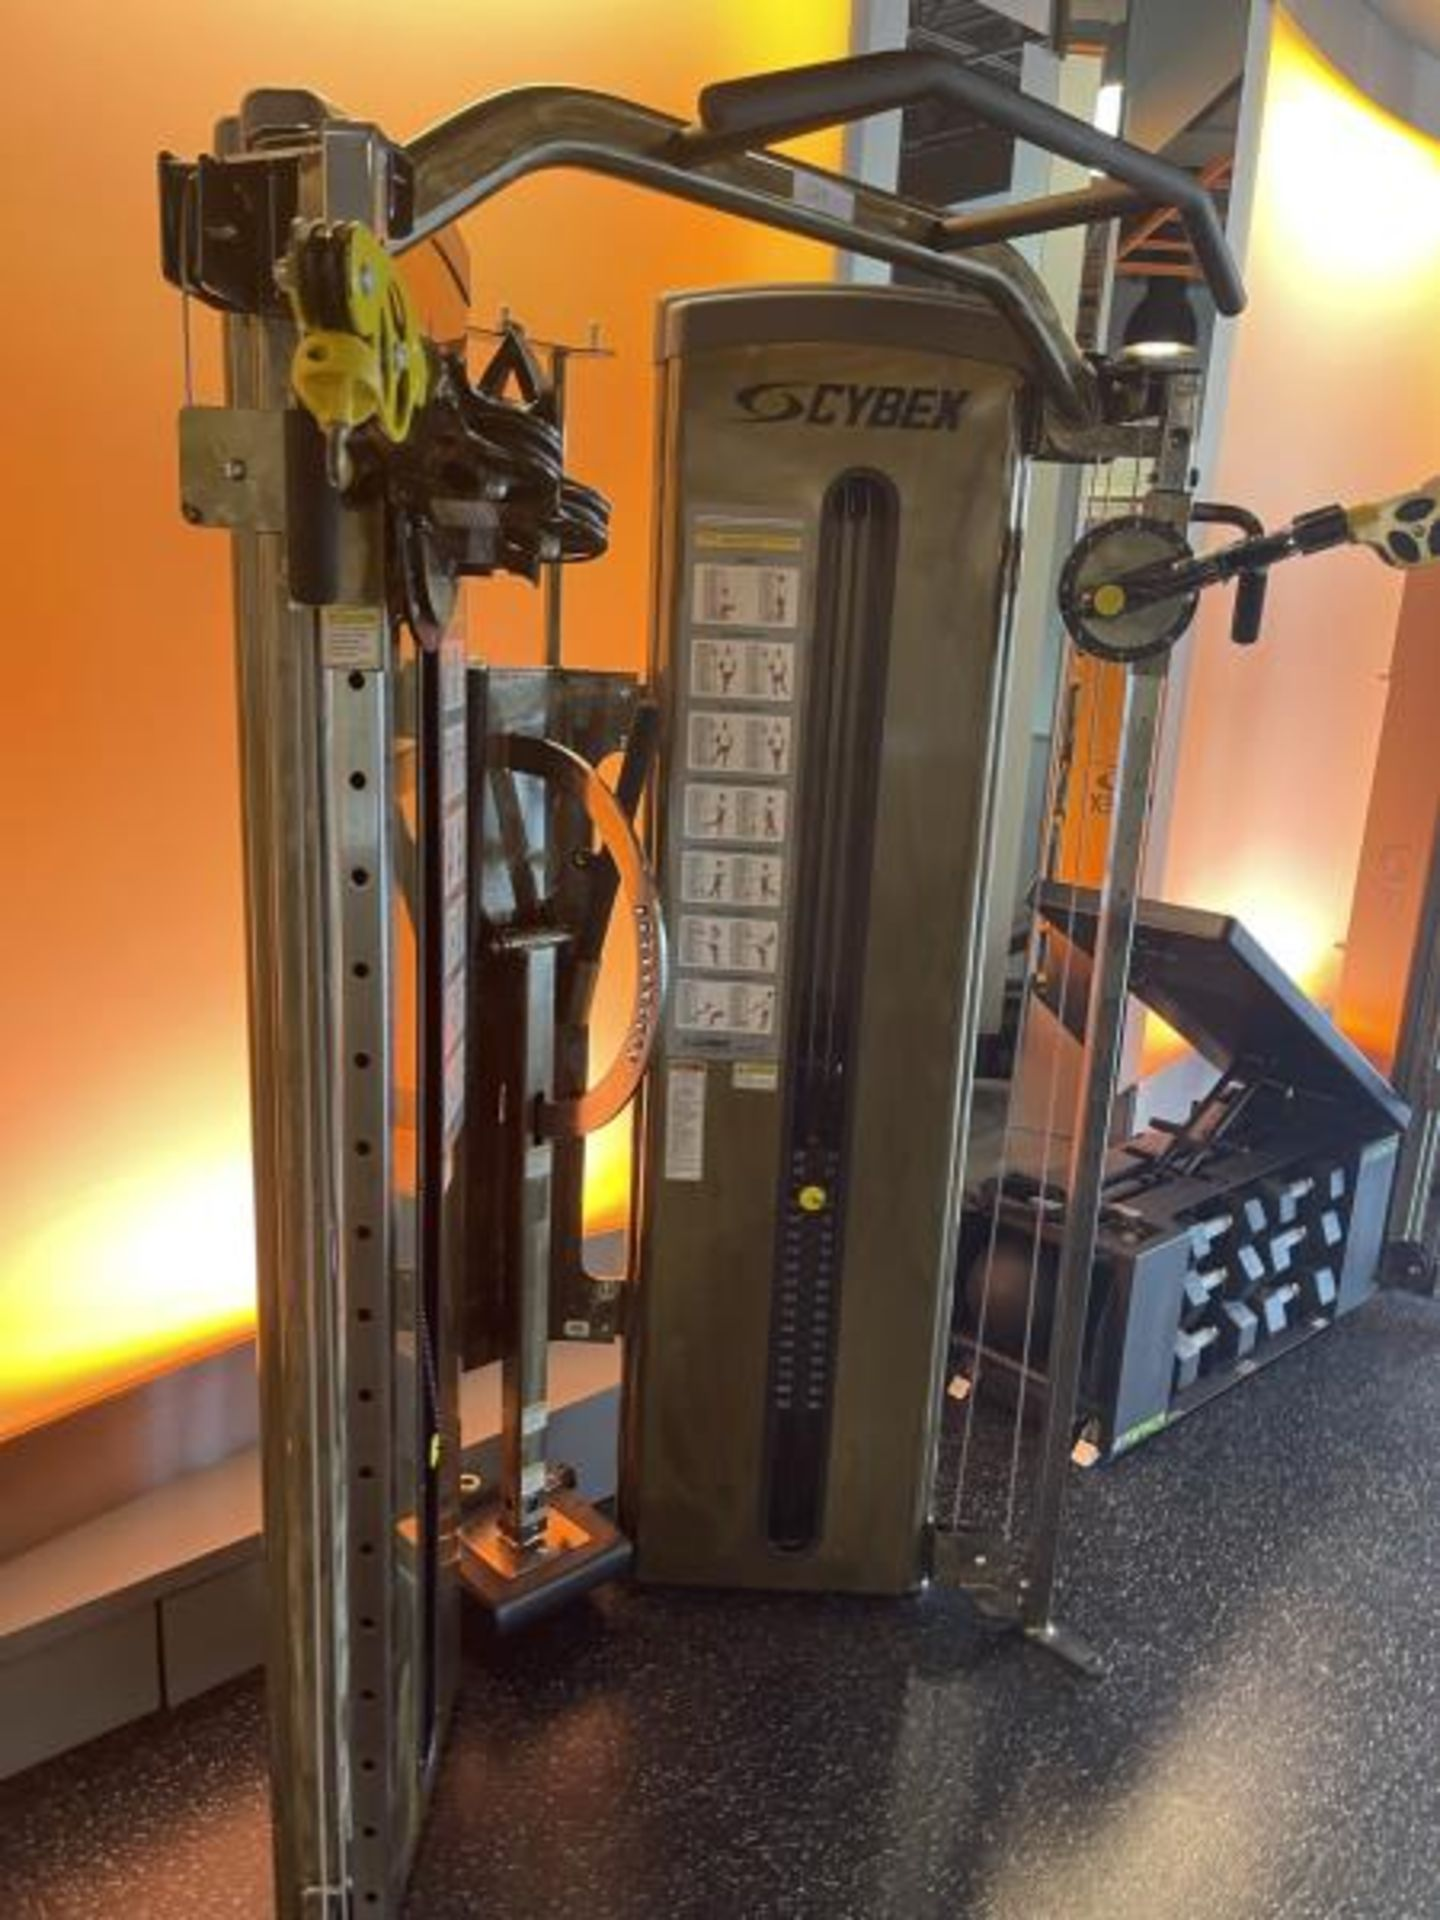 Cybex Bravo All-In-One Functional Trainer M: 8830 - Image 2 of 5